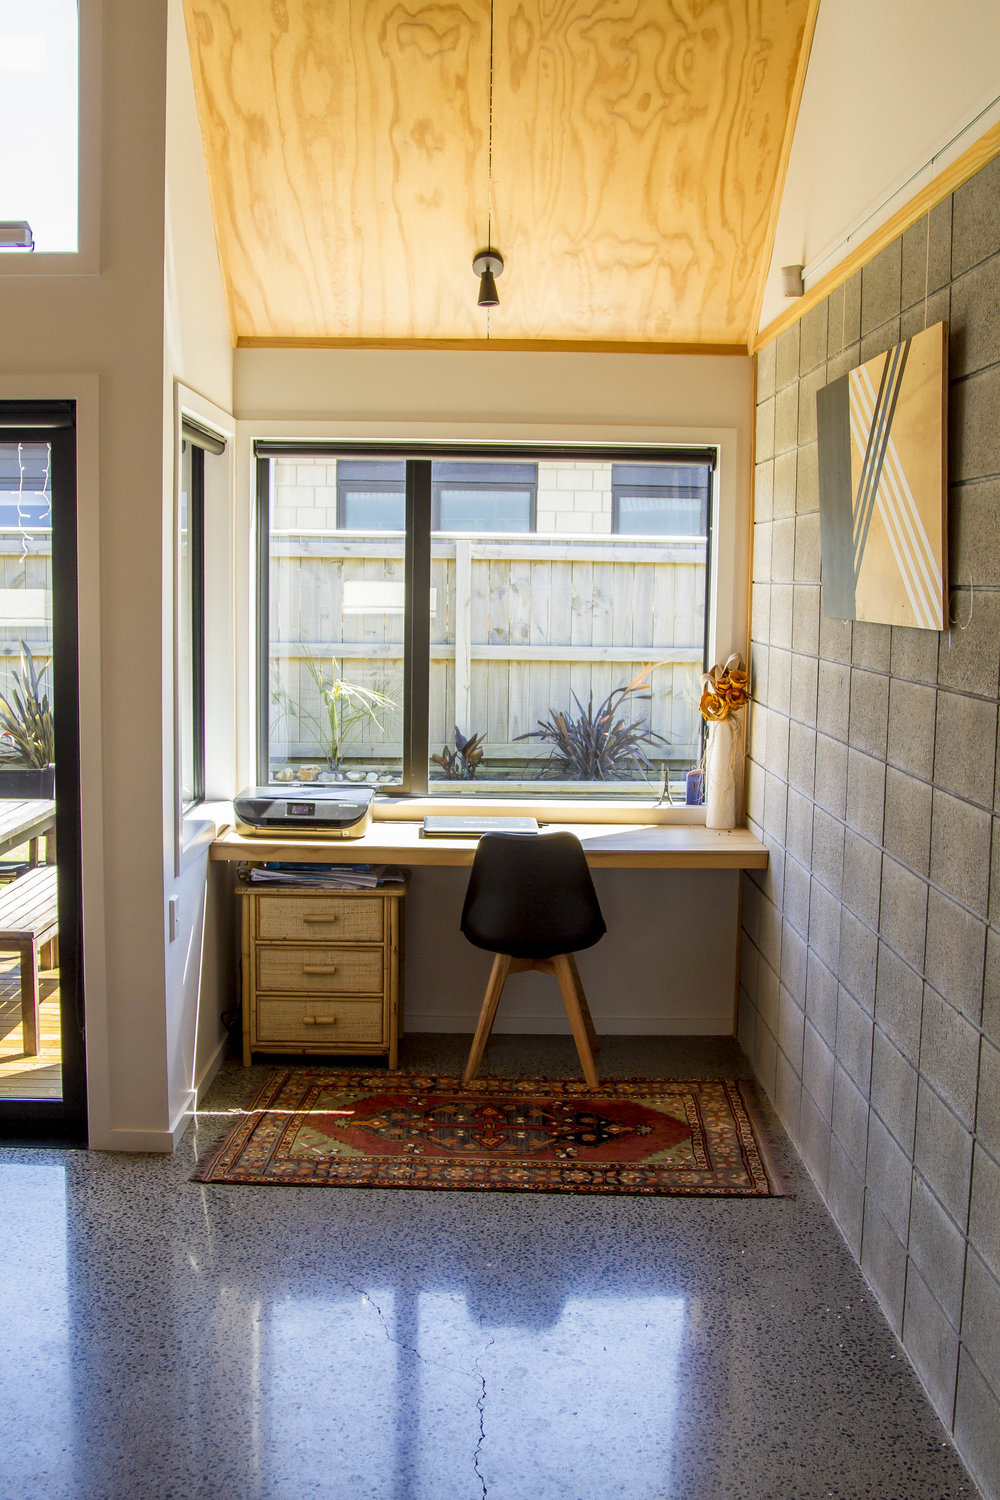 Study Nook  - The design resulted in a small alcove which was perfect for a light filled study nook